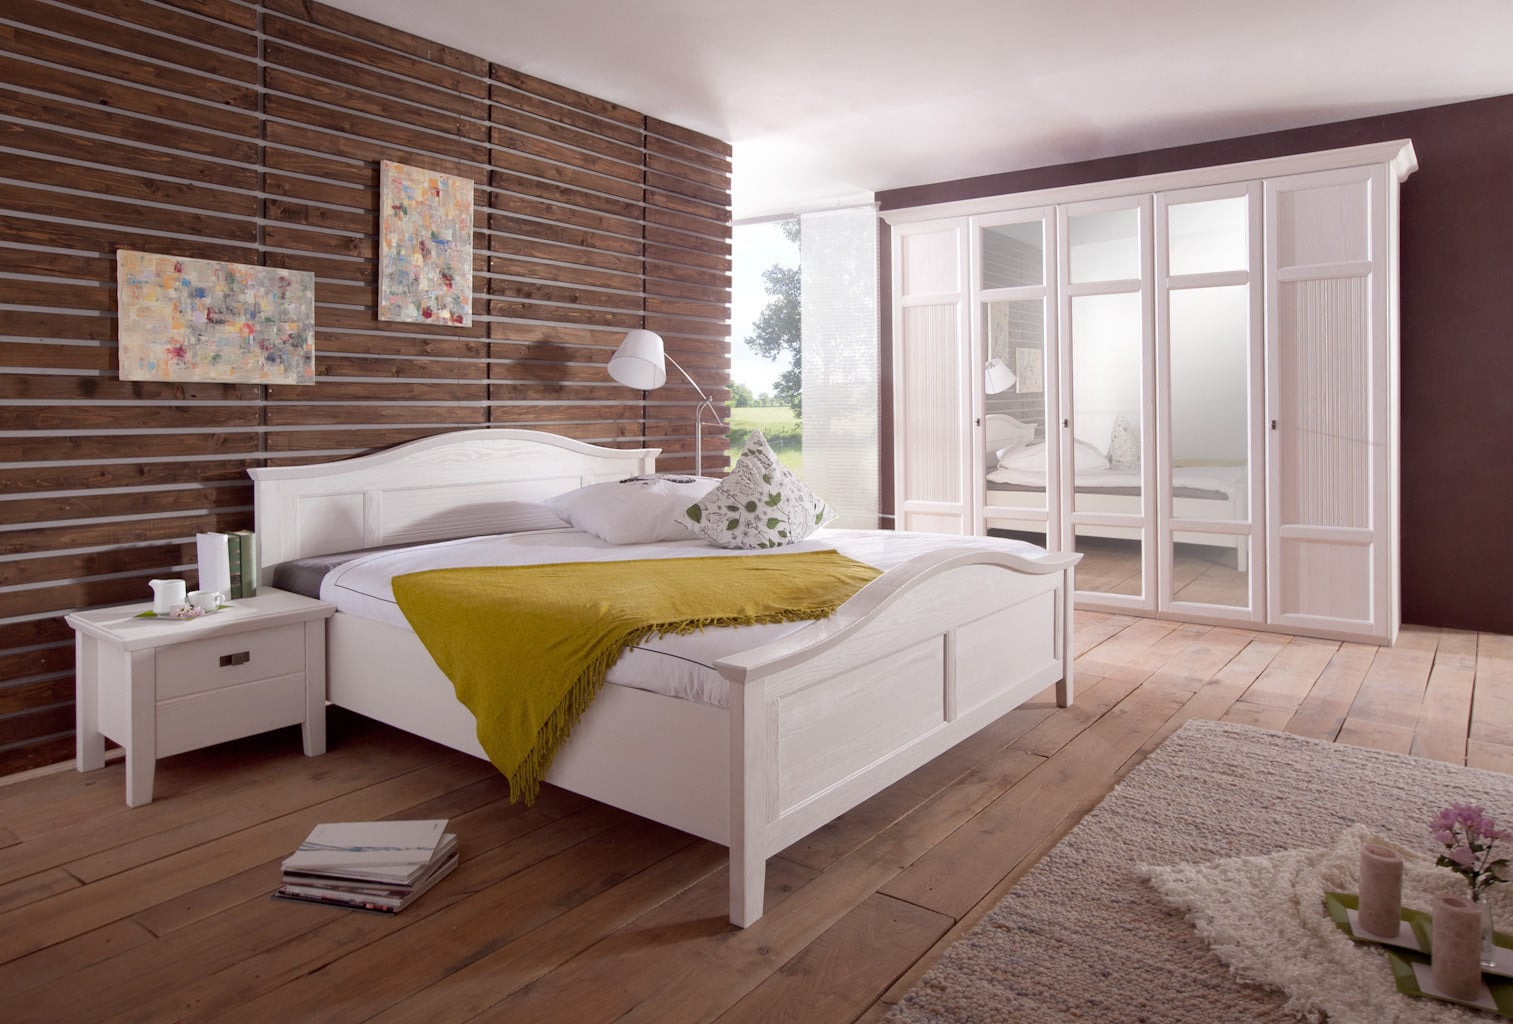 schlafzimmer komplett rome pinie weiss pickupm. Black Bedroom Furniture Sets. Home Design Ideas